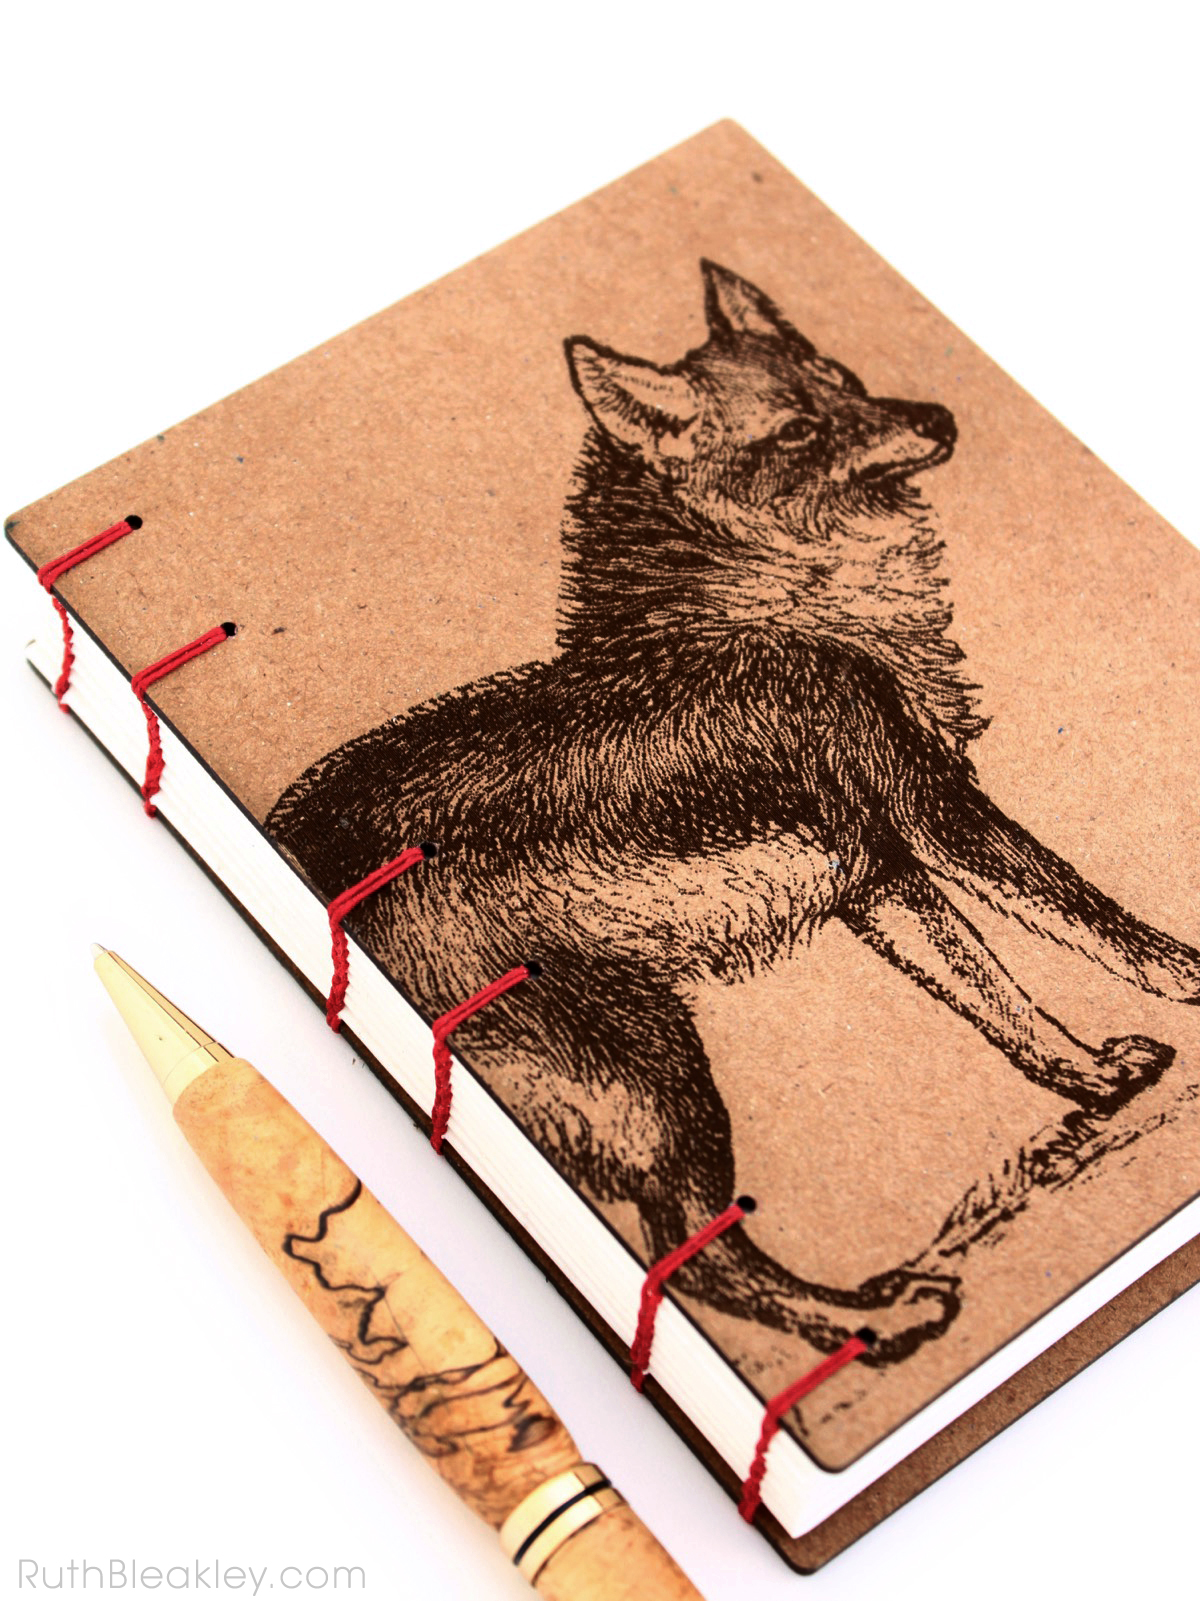 Coyote Wolf Journal handmade by American book artist Ruth Bleakley - 5